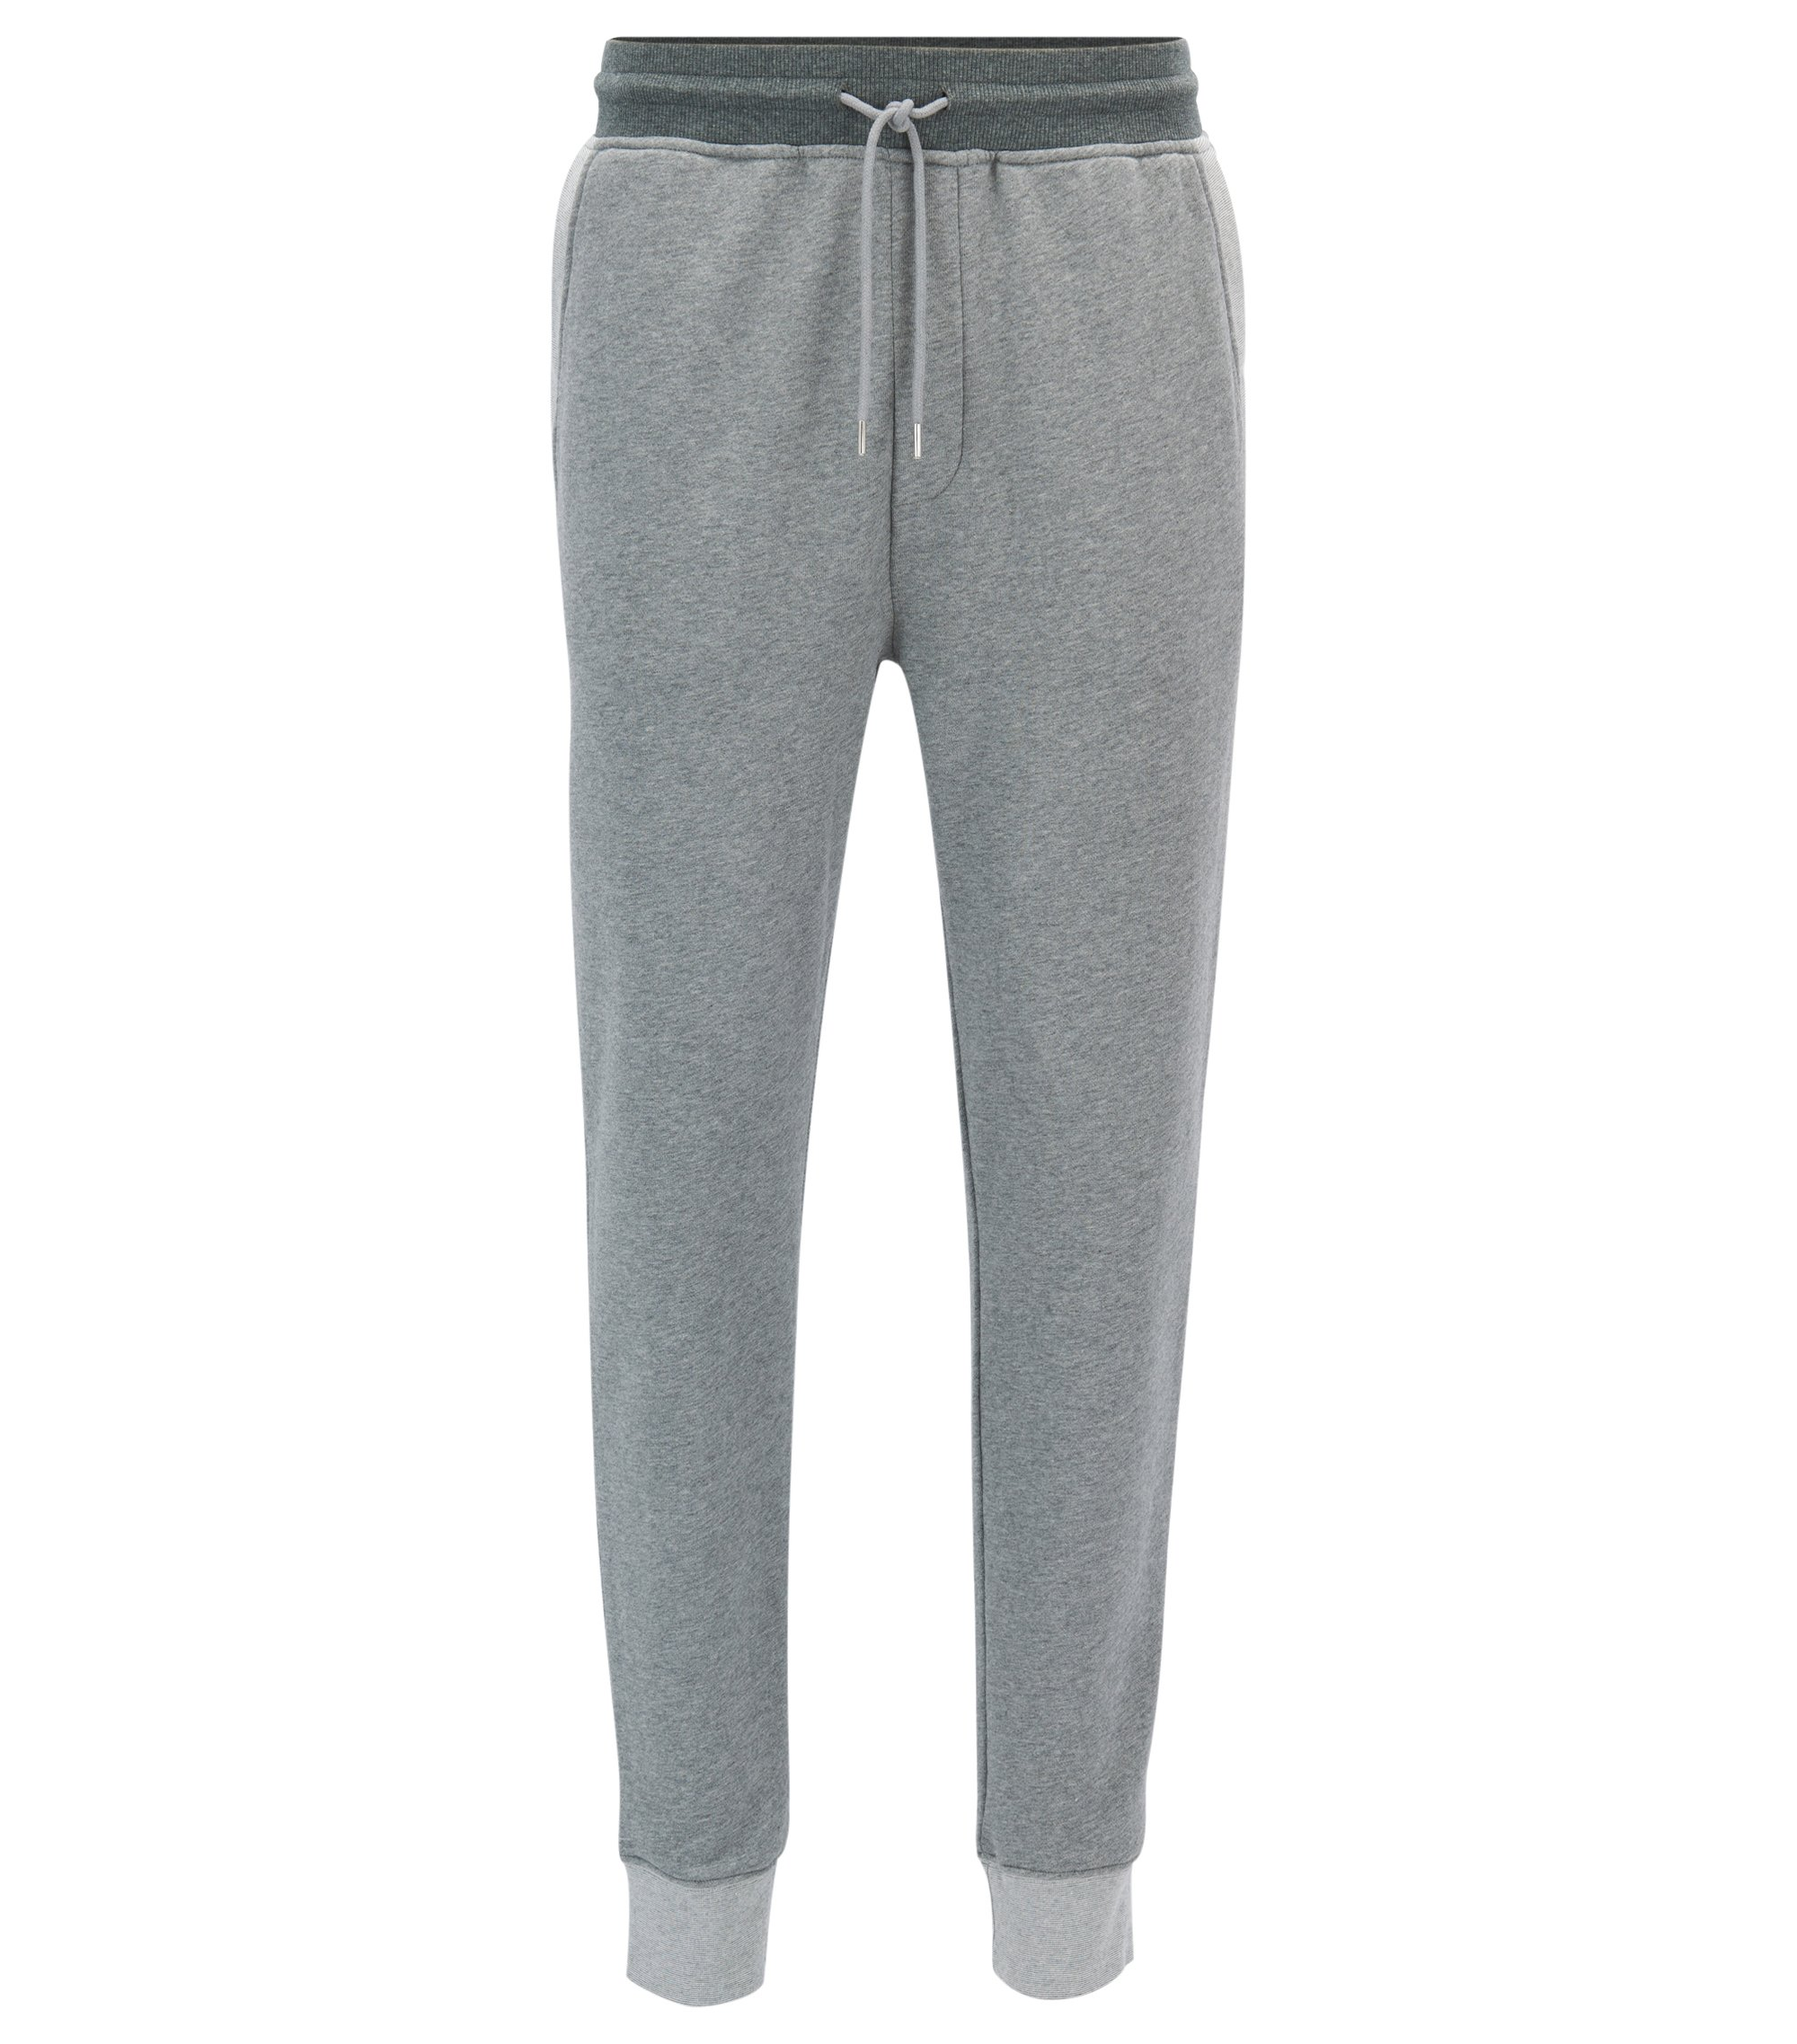 Pantaloni da jogging tapered fit in french terry, Grigio chiaro